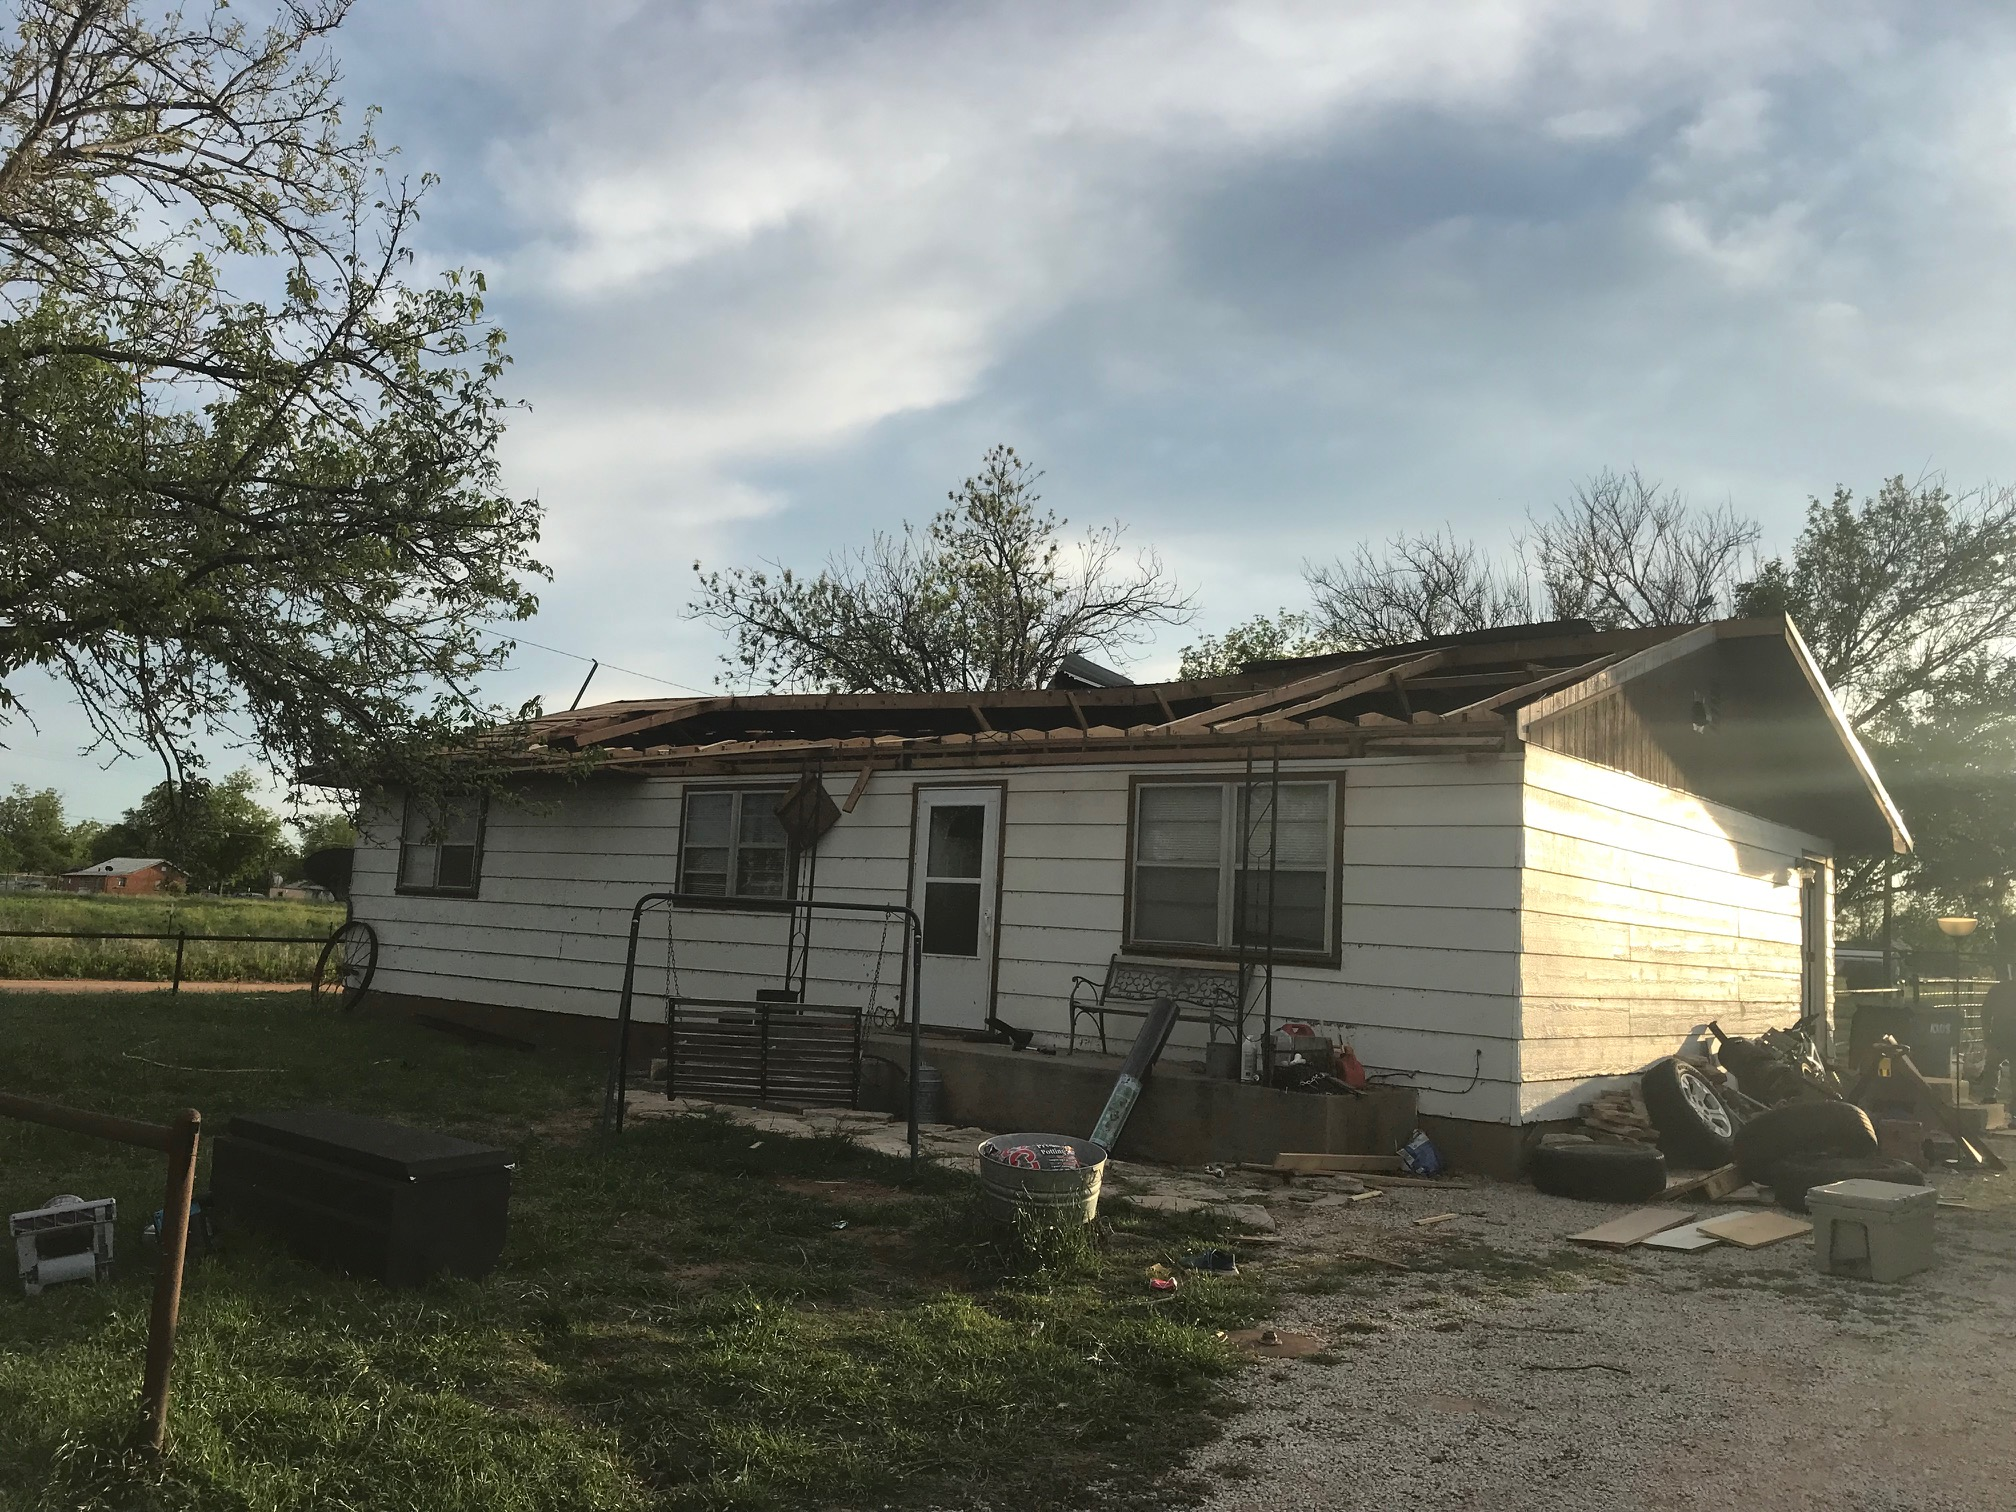 Home damaged in Paducah during the early hours of 23 April 2019. The image is courtesy of Randy Detwiler.